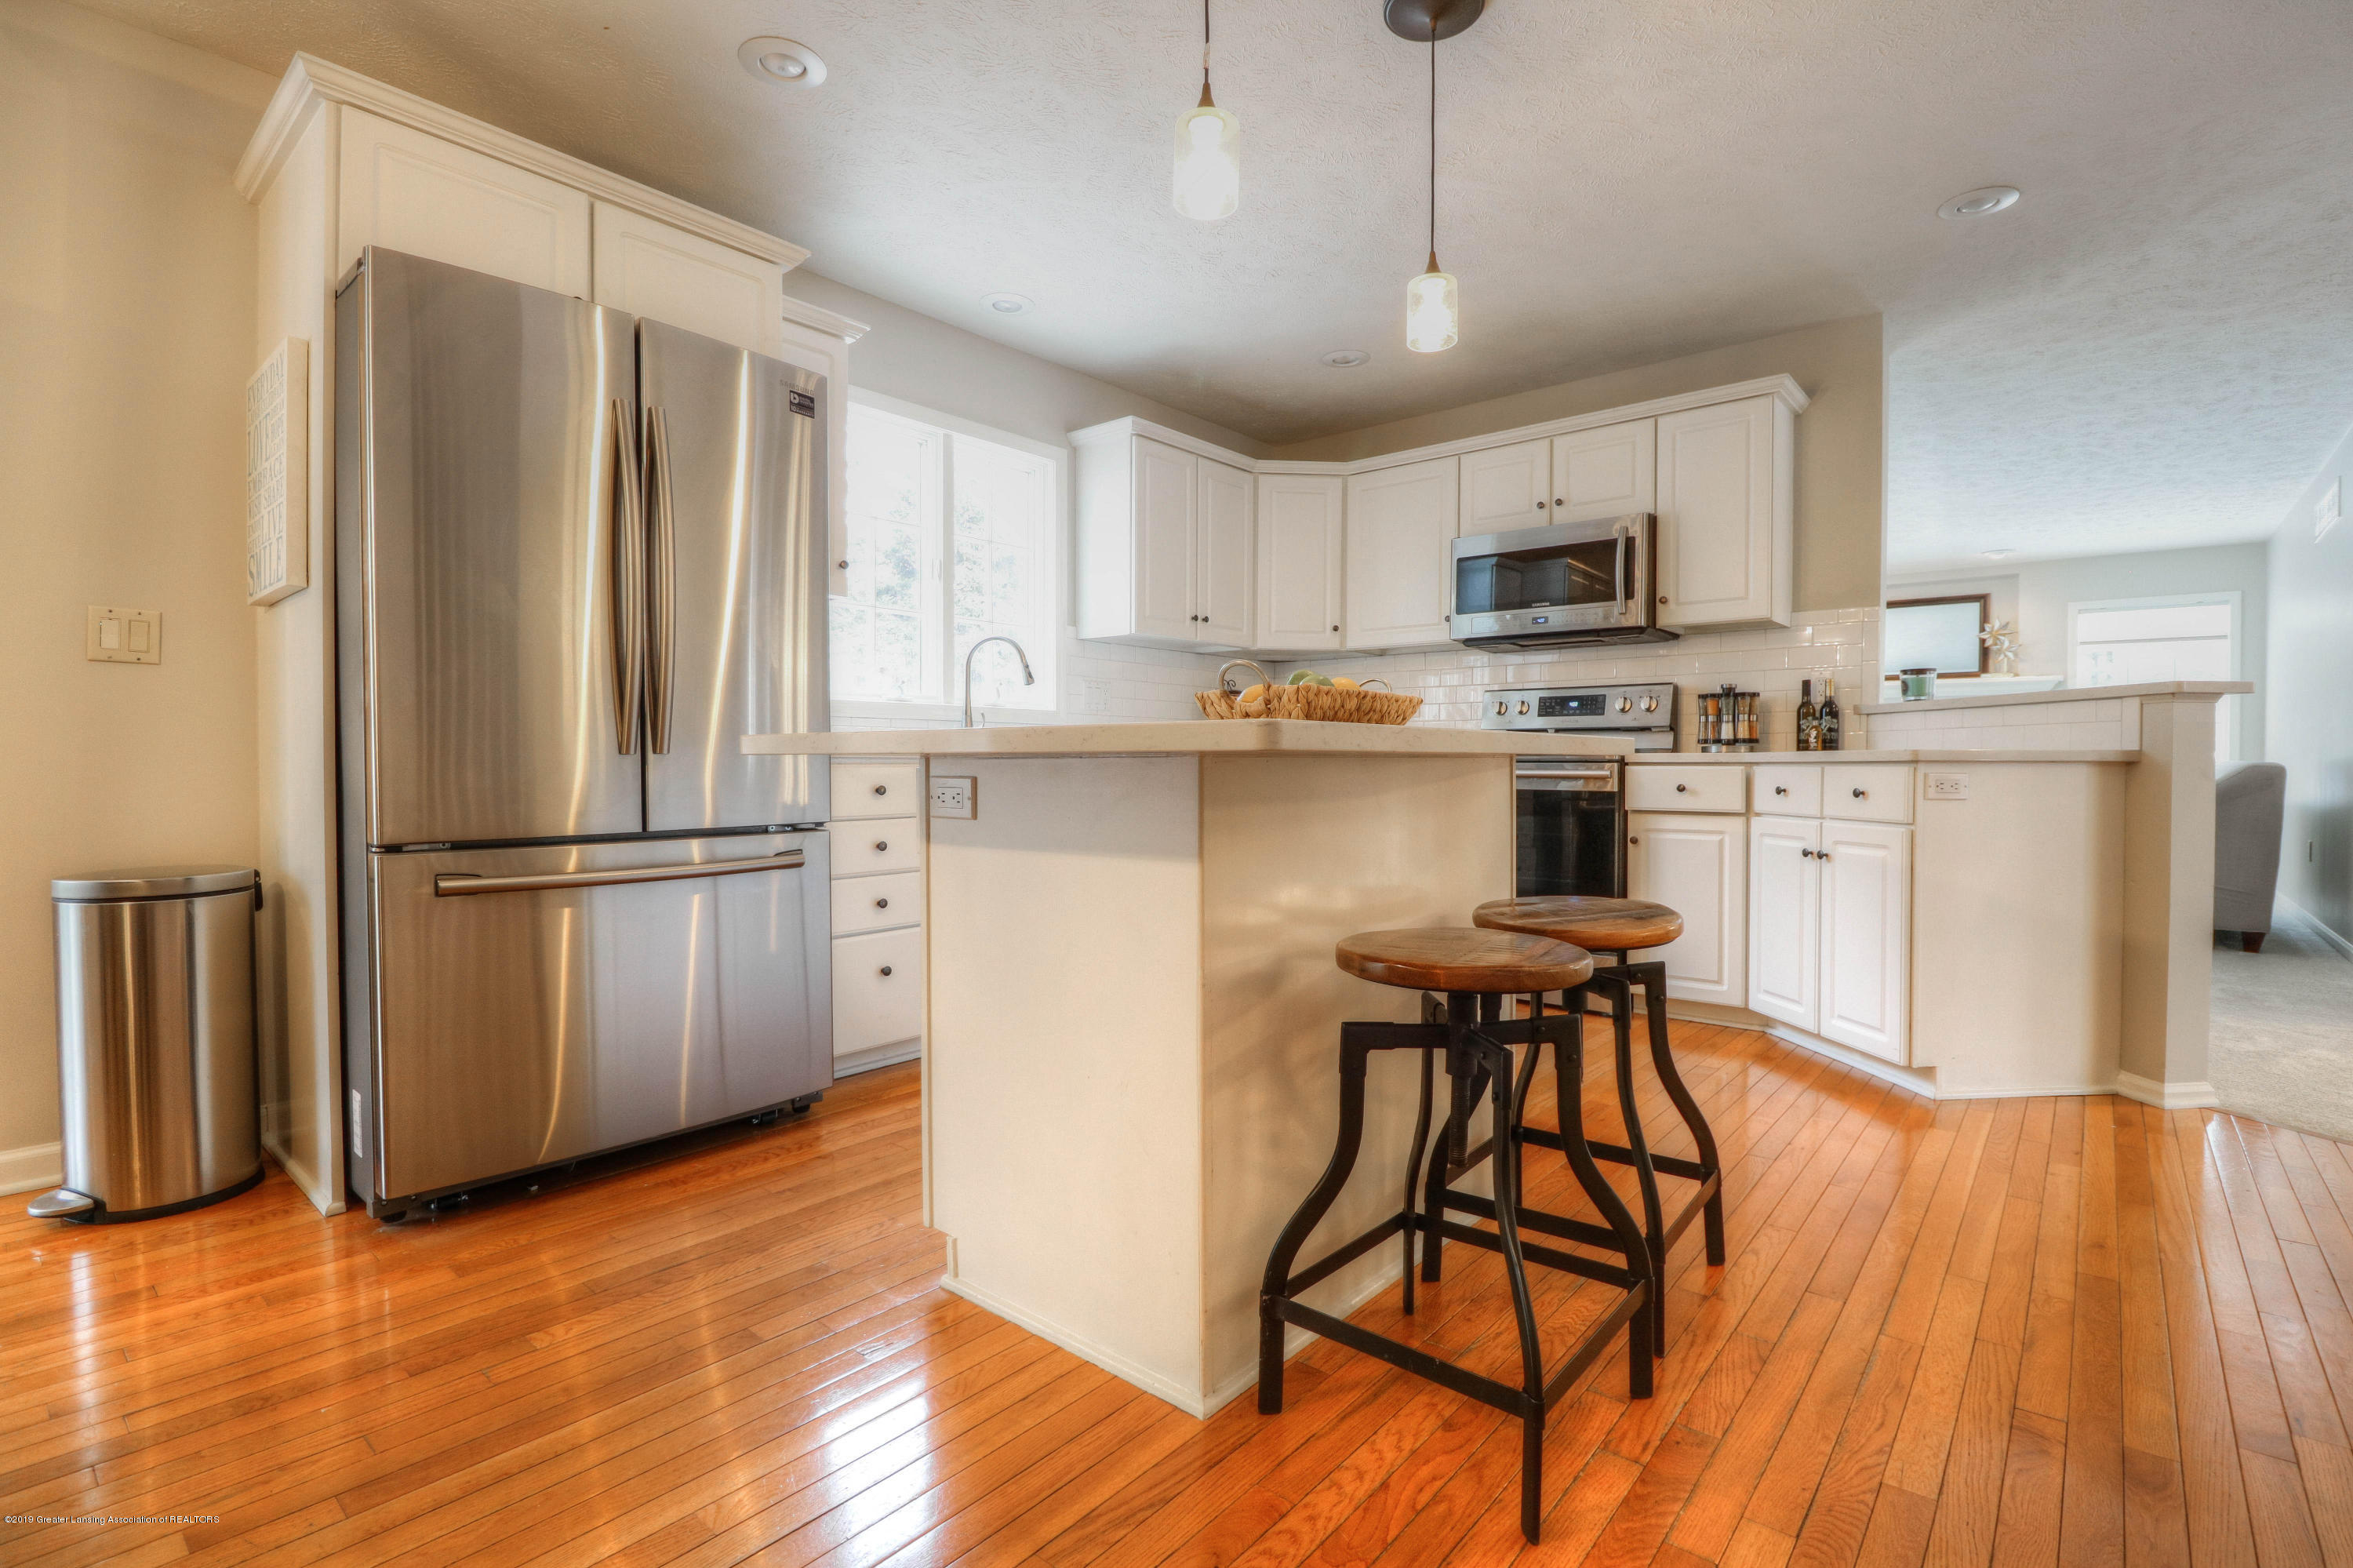 804 Sunrise Cir - Kitchen - 9